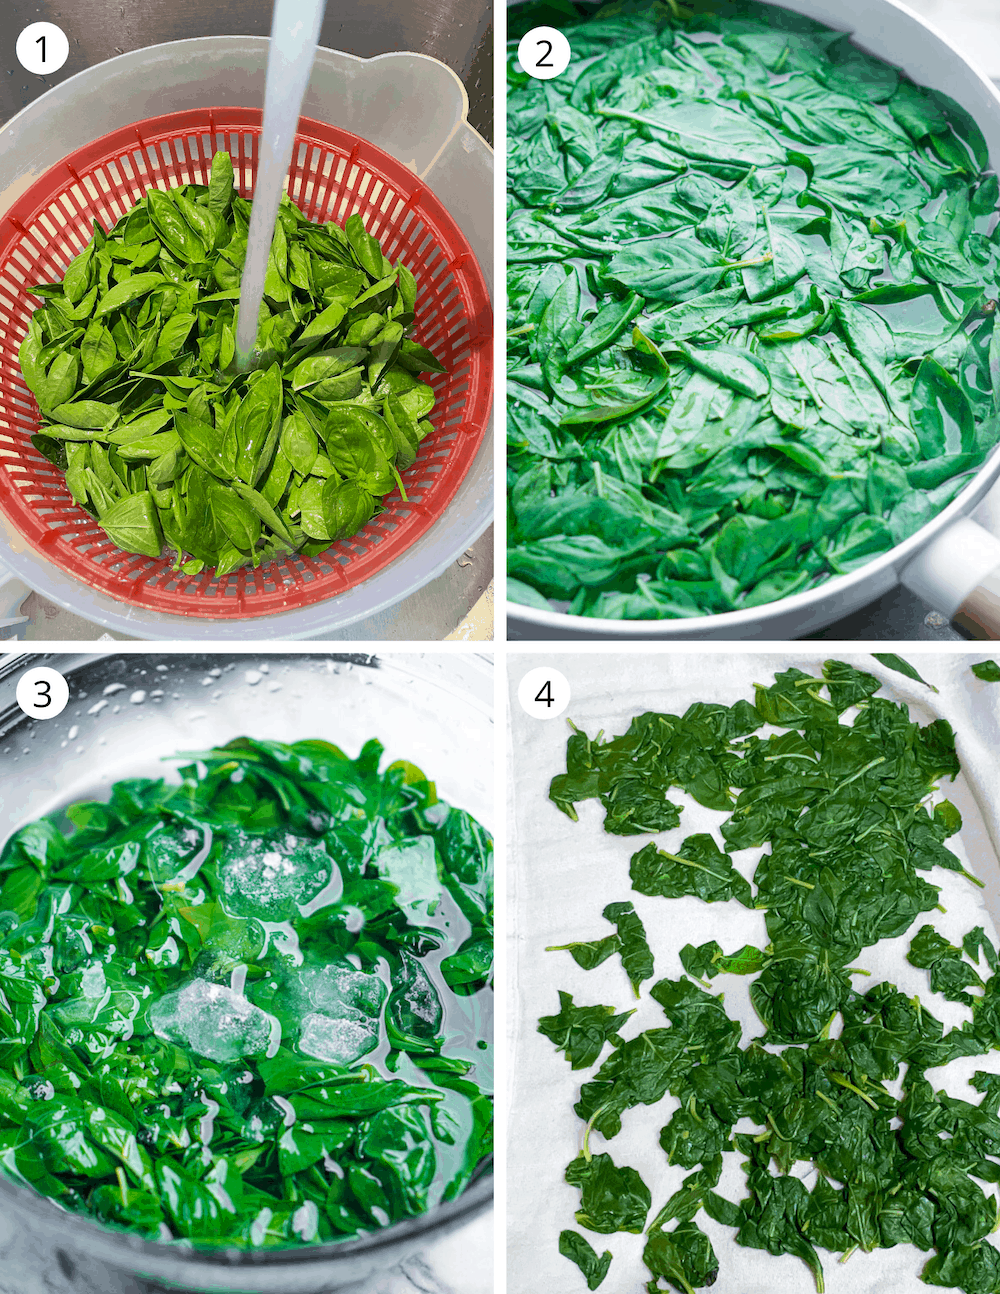 Step by step process of blanching basil for pesto